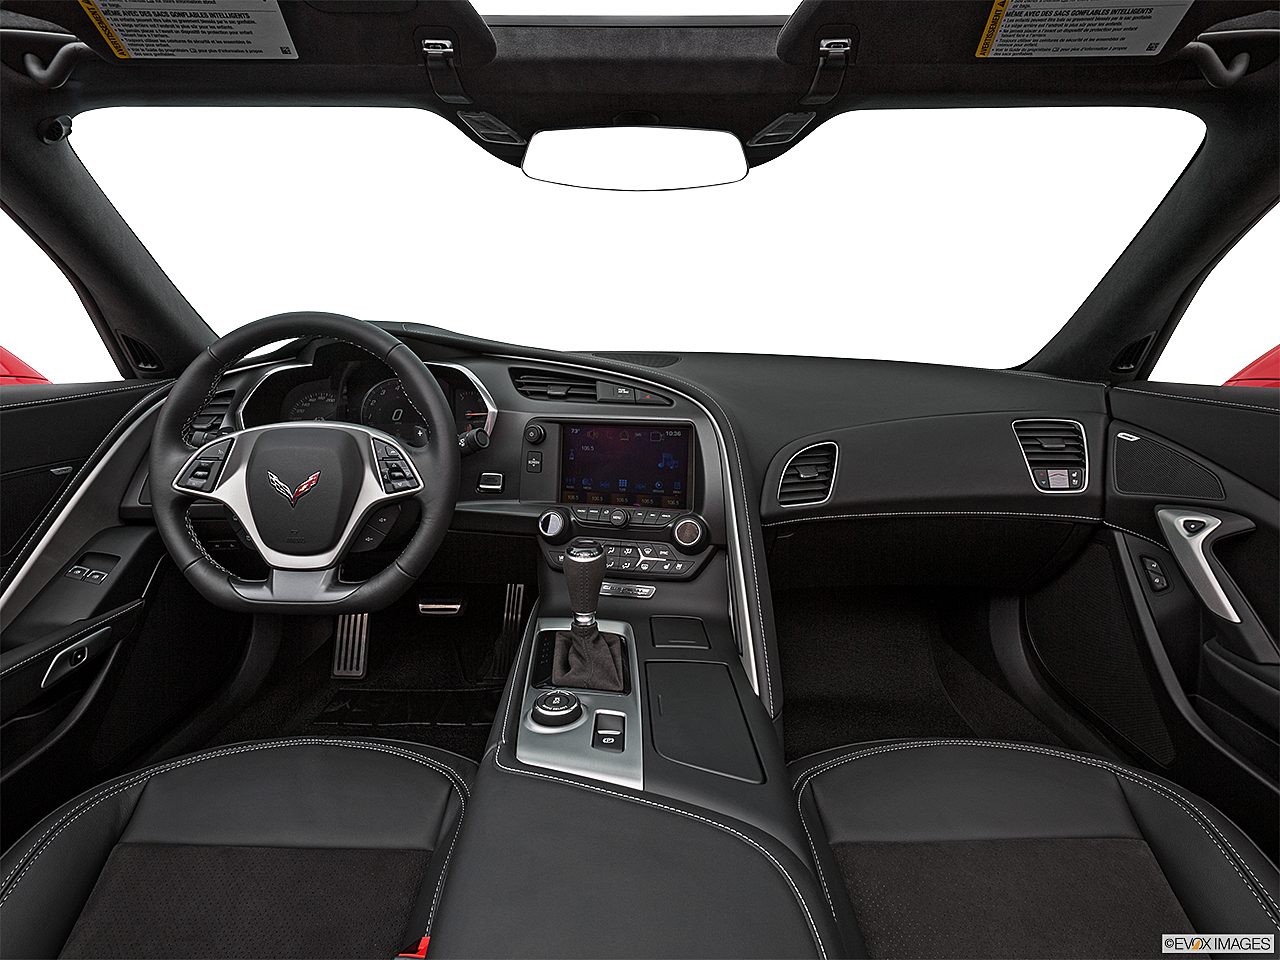 2019 Chevrolet Corvette Stingray 3LT, centered wide dash shot